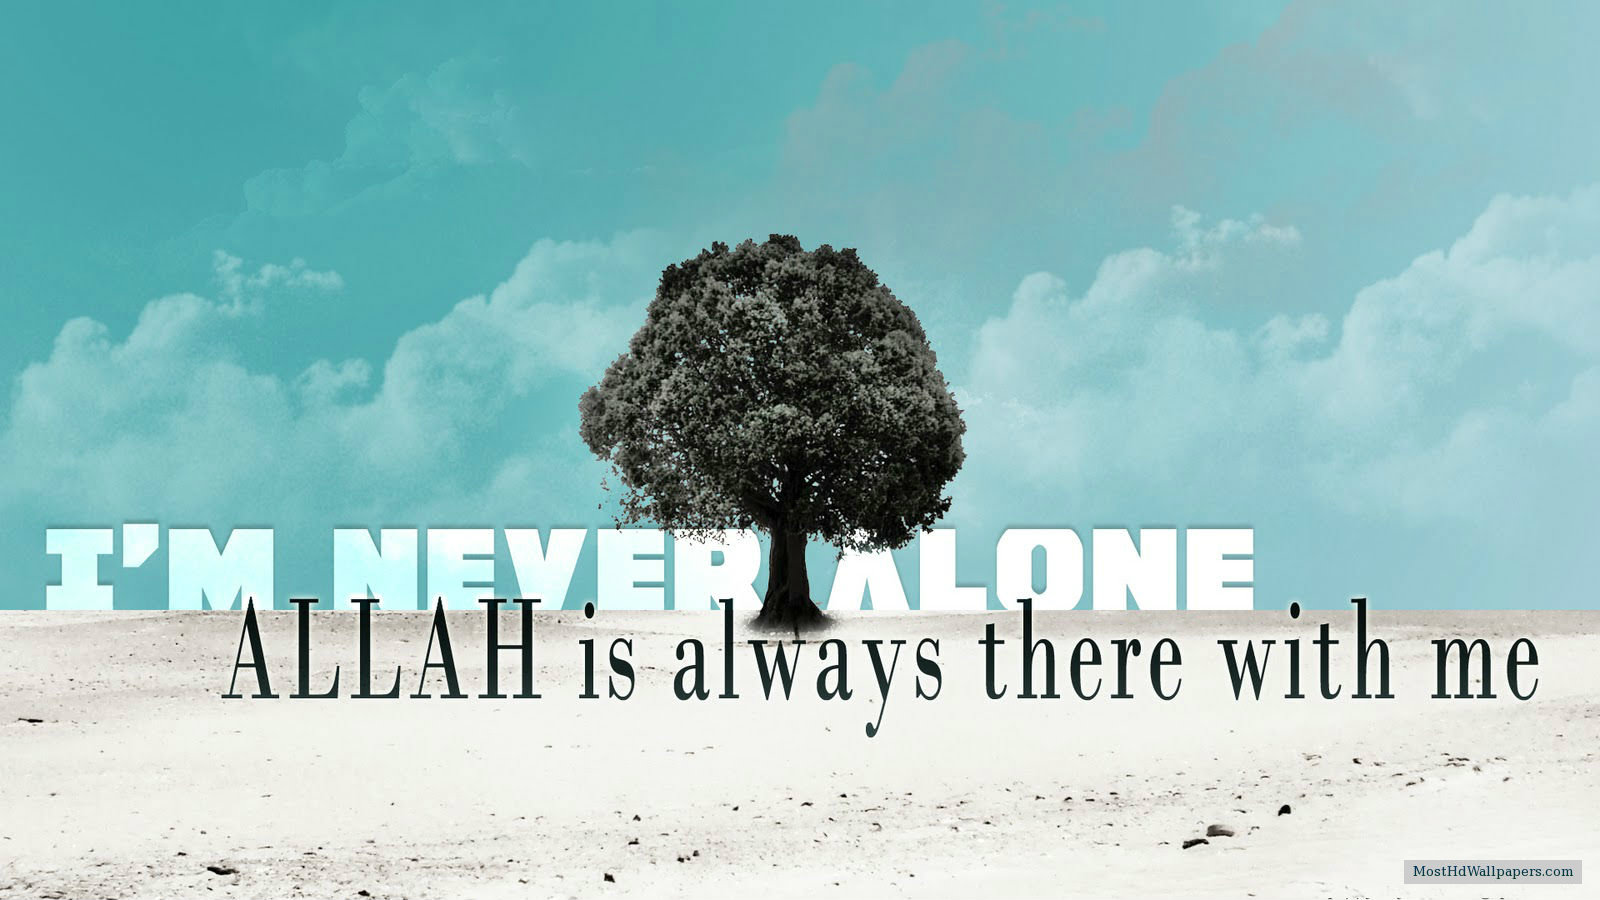 Wallpaper Islamic Quotes